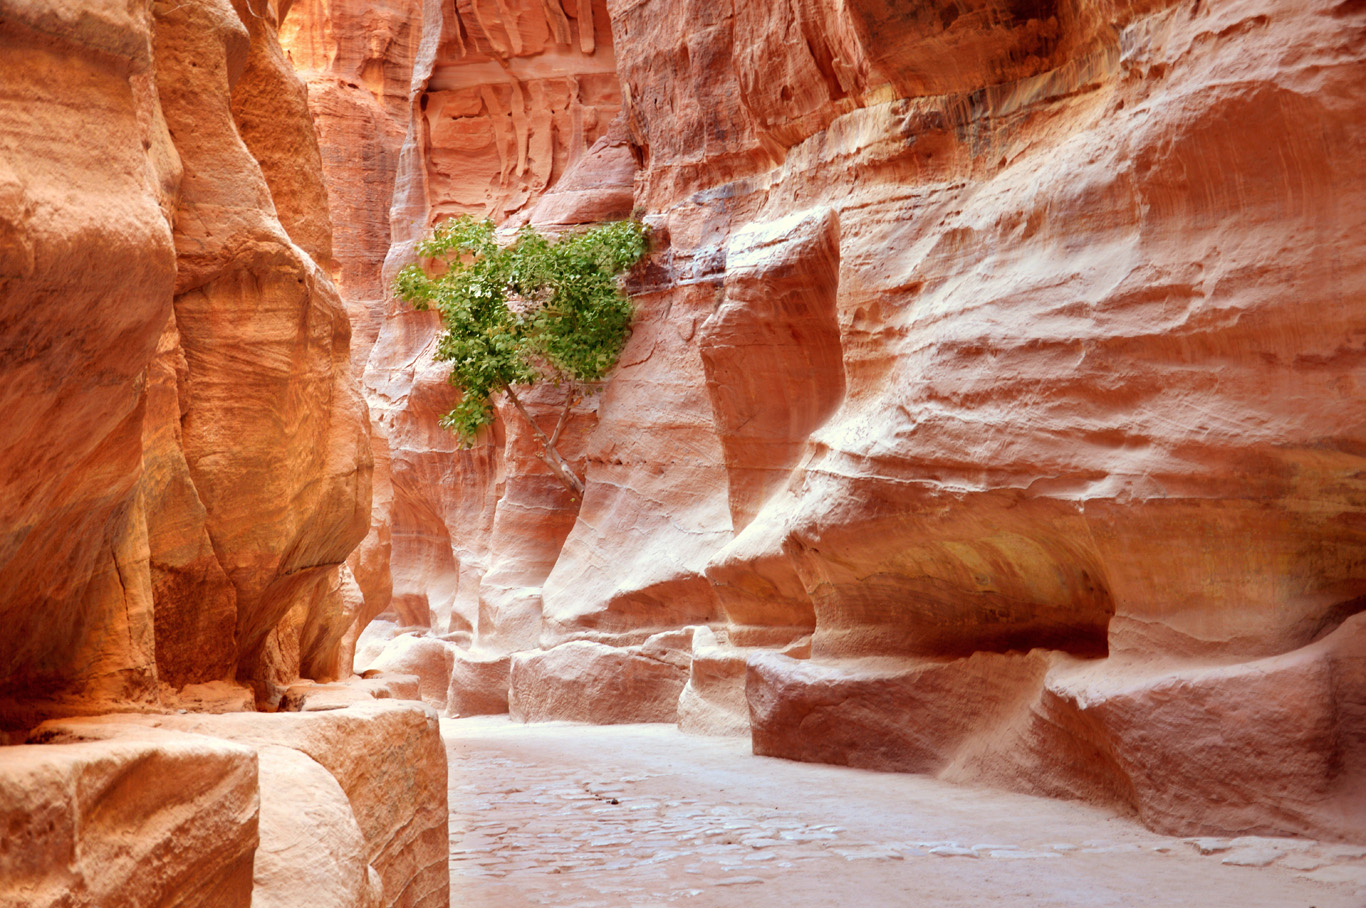 The beautiful siq - the passage leading to Petra